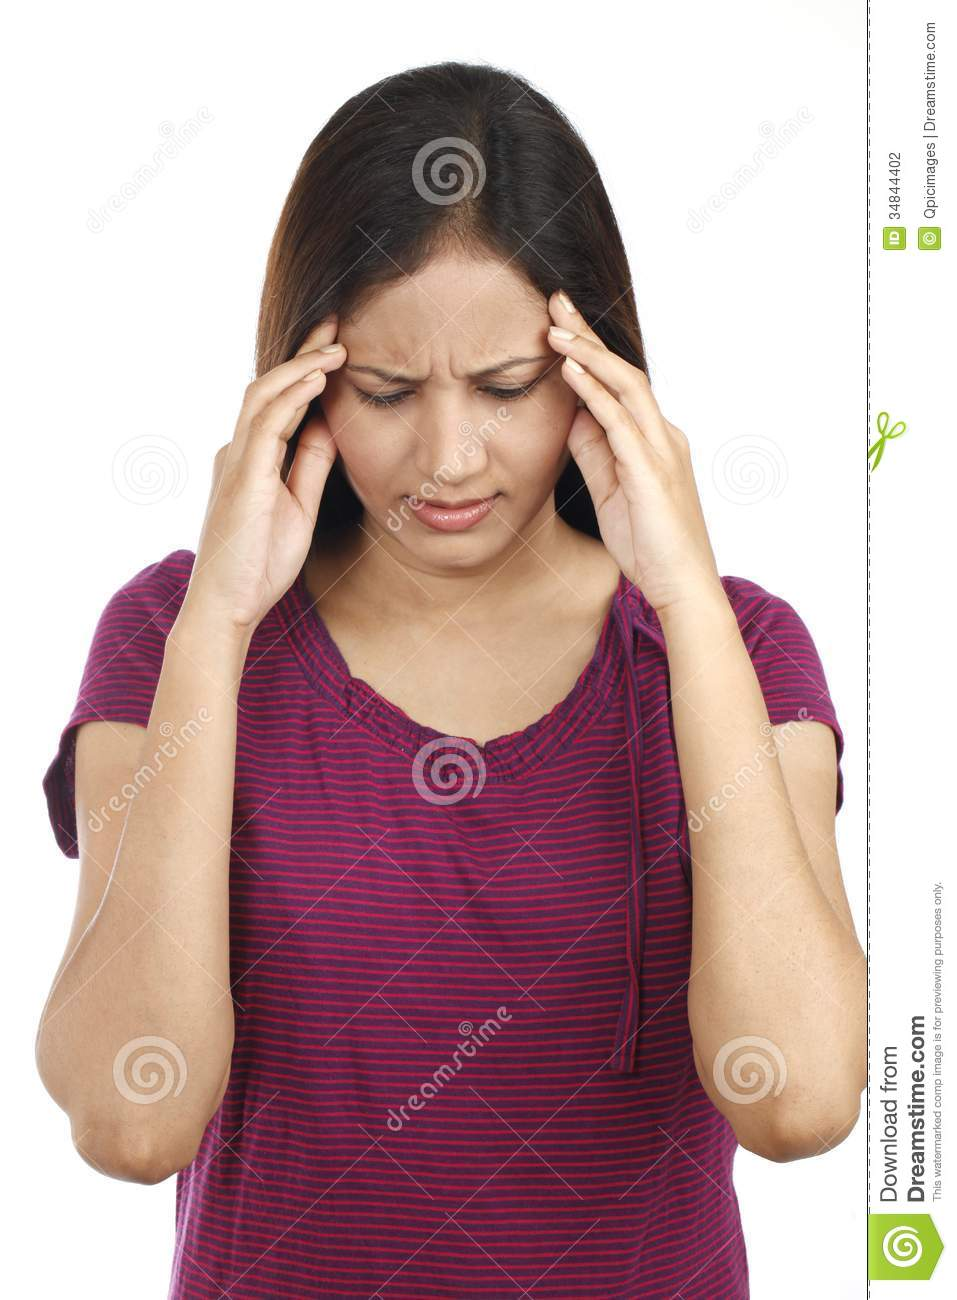 Indian Young Teen Model Fashion Glamour Model: Indian Teen With Headache Stock Photo. Image Of Head